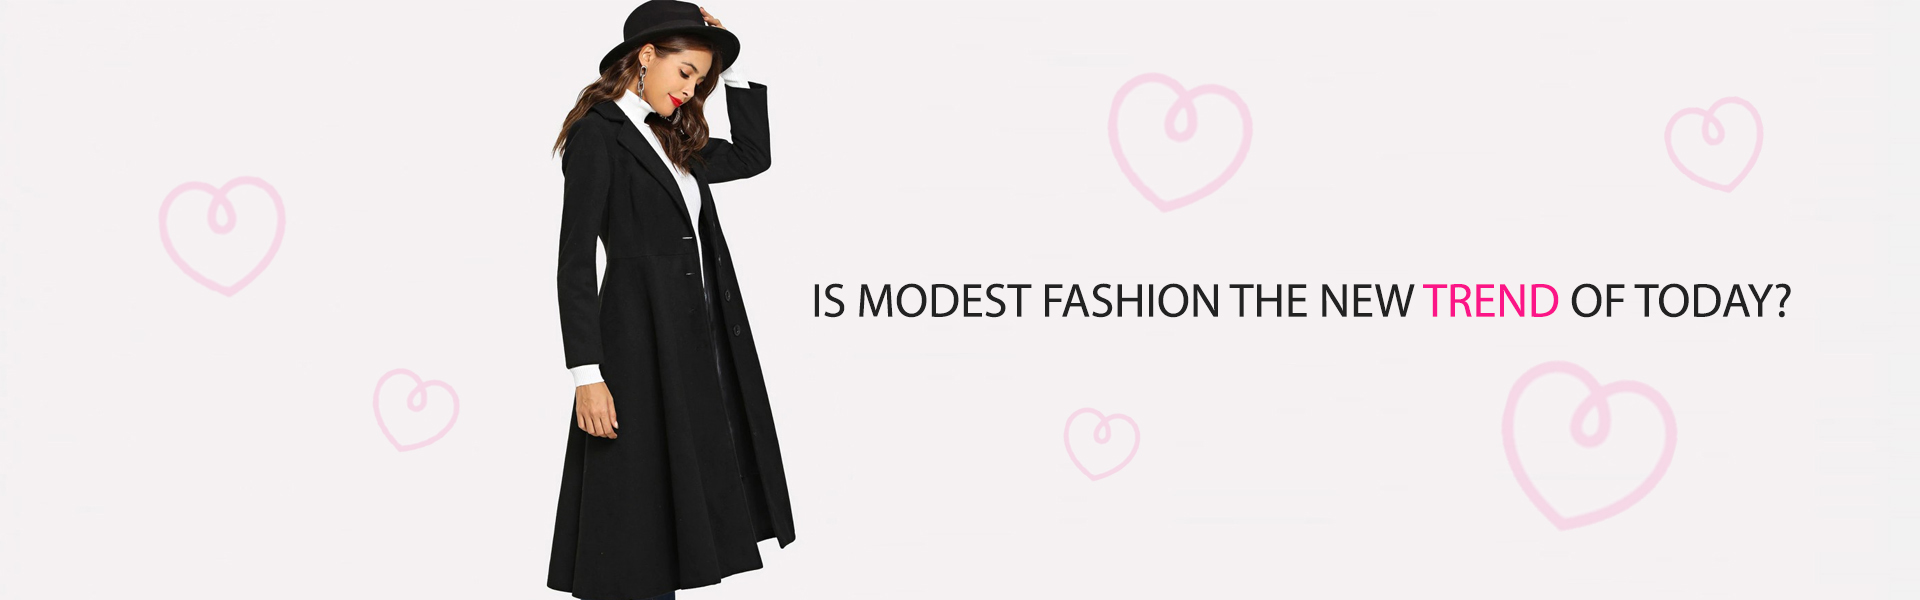 Is modest fashion the new trend of today?